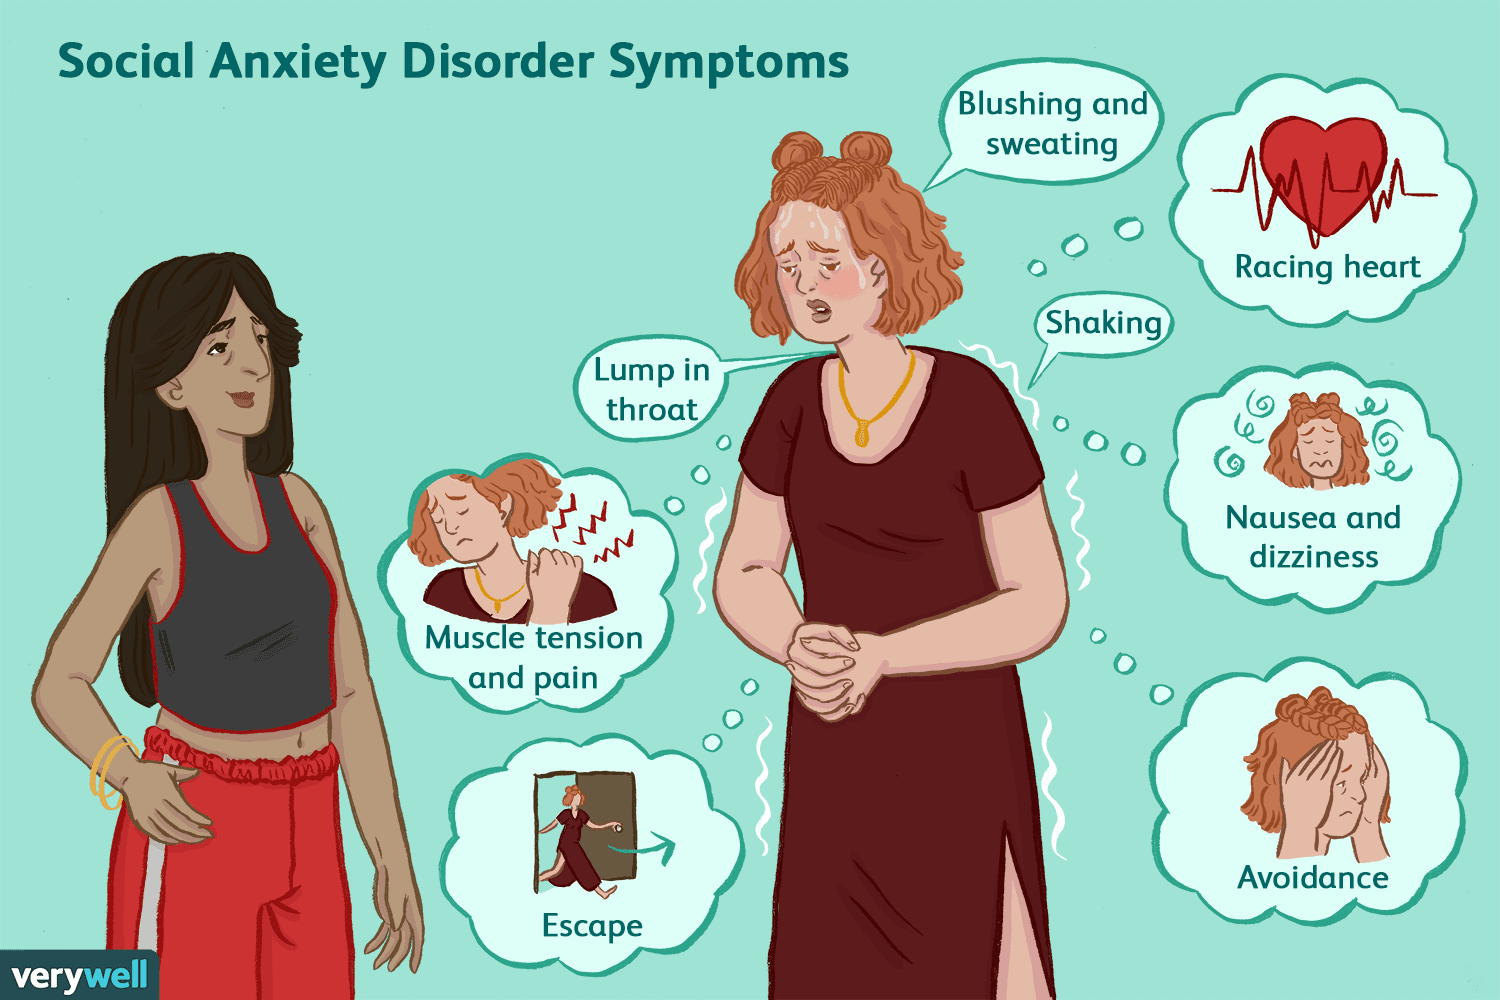 Symptoms and Diagnosis of Social Anxiety Disorder